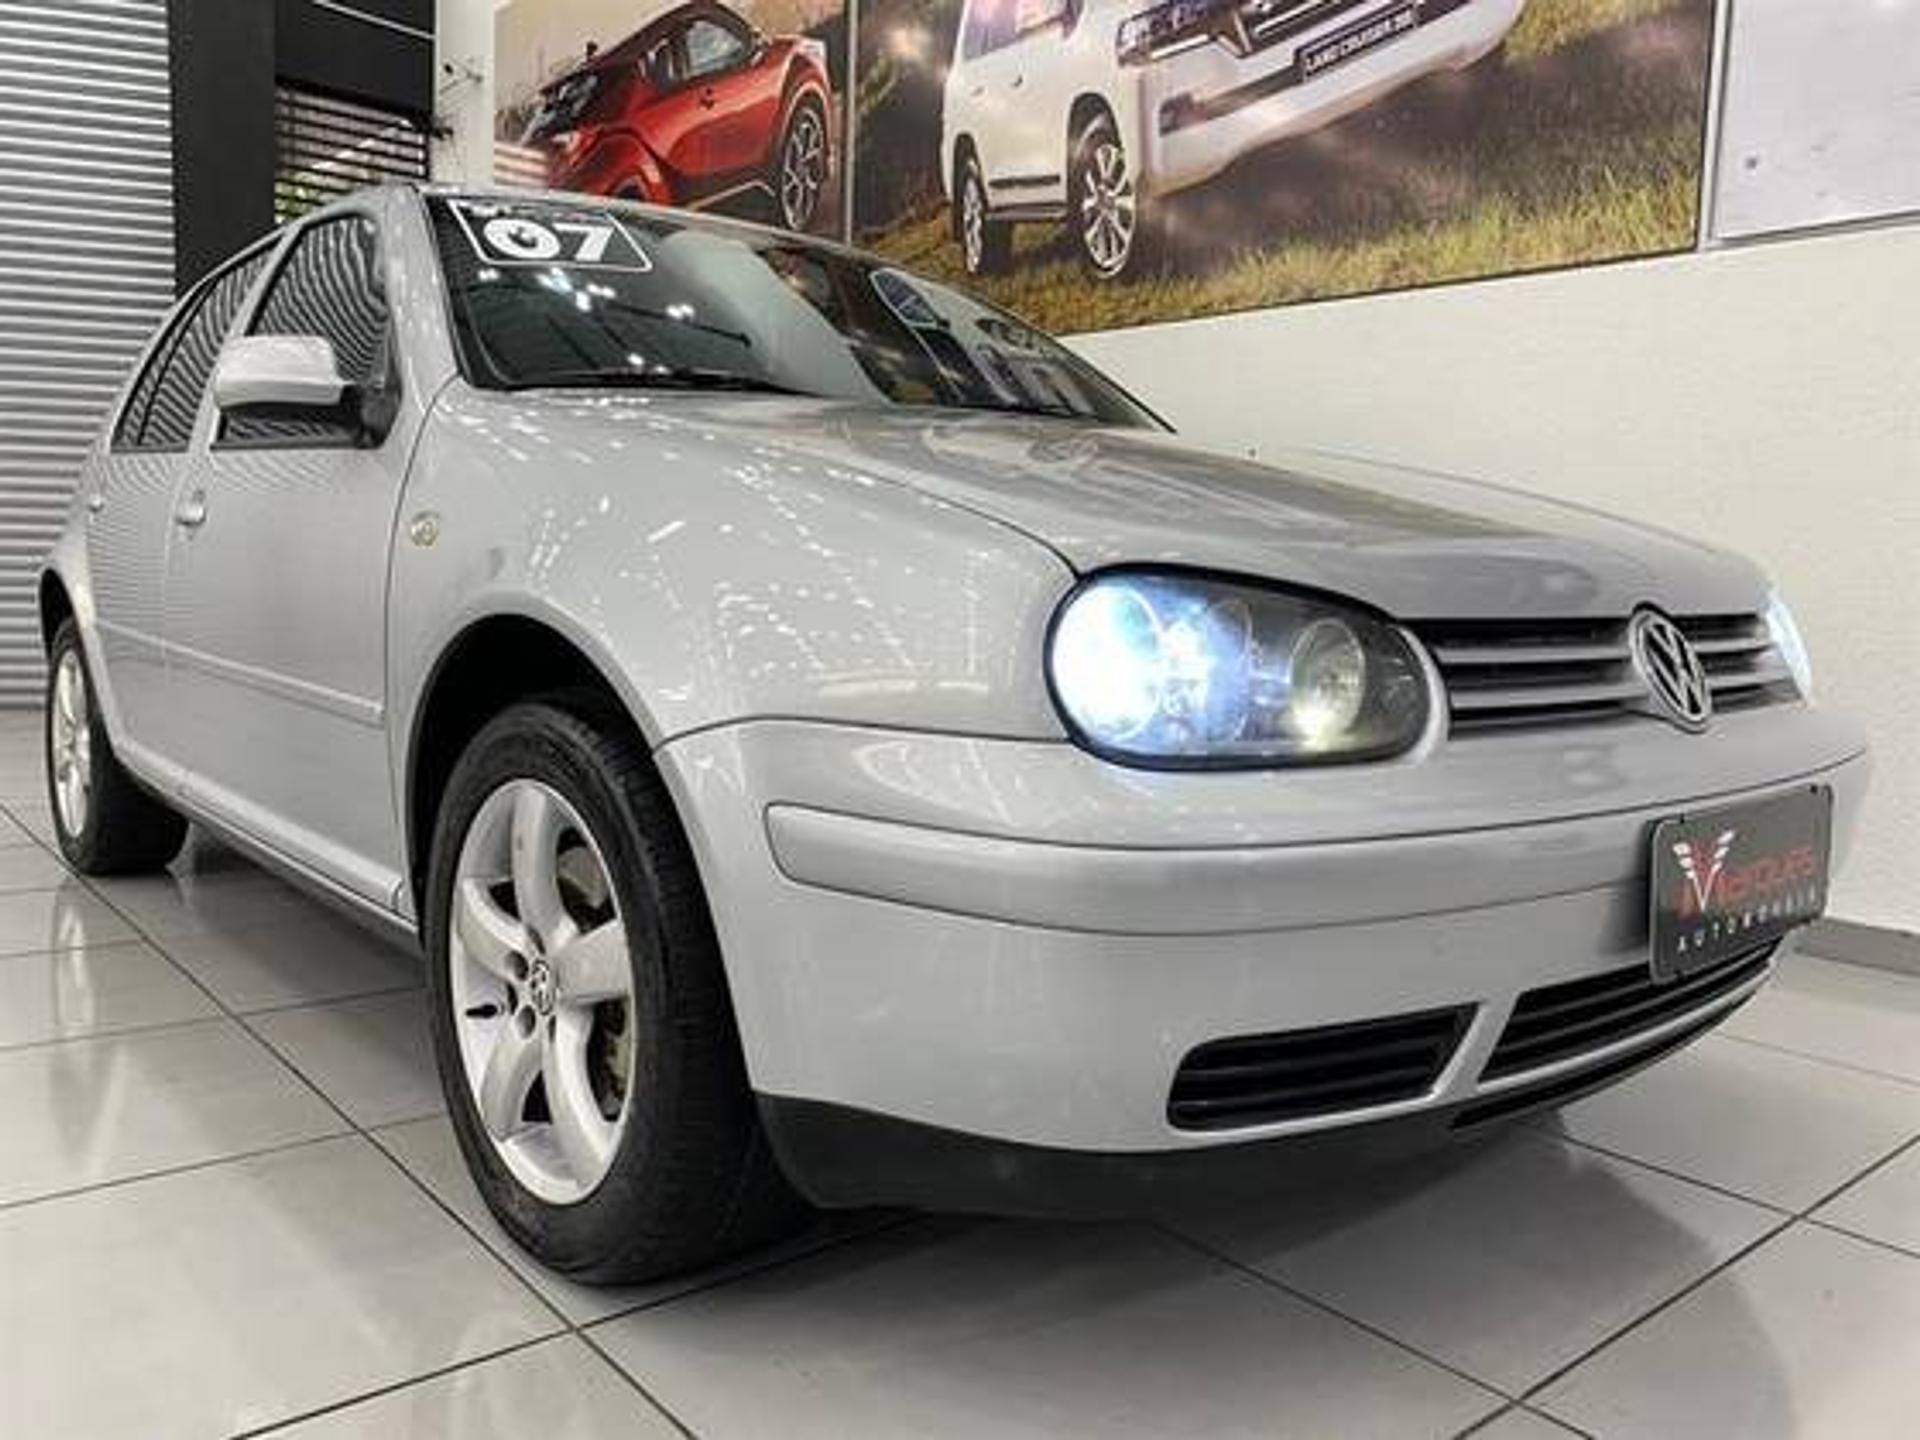 Volkswagen Golf 1.8 Mi Gti 20v 180cv Turbo Gasolina 4p Manual Wmimagem10543417088